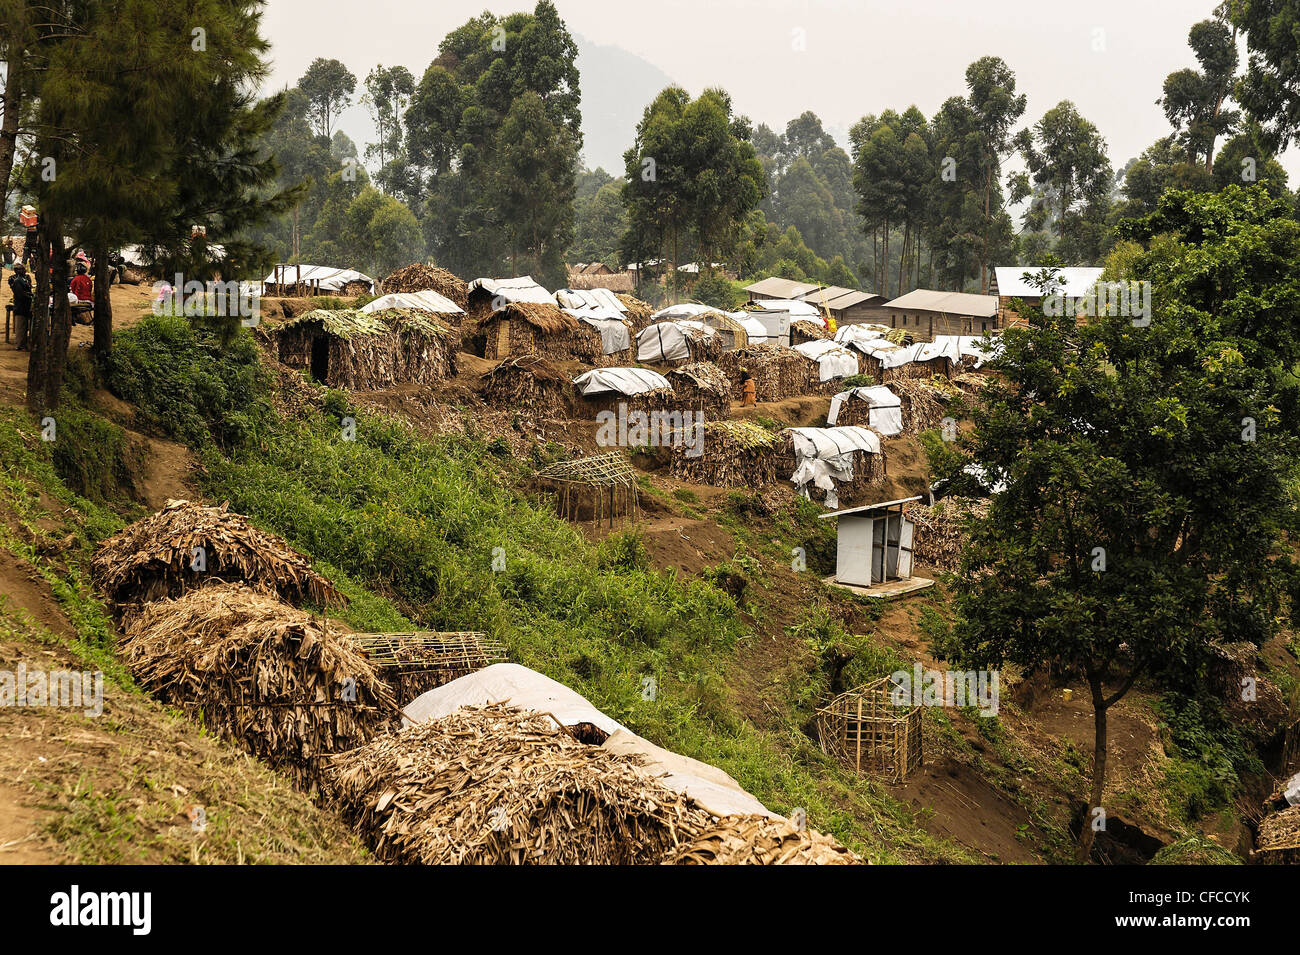 26/01/2012: IDP camp at the village of Karonja on the outskirts of Masisi . Many families have set up makeshift Stock Photo